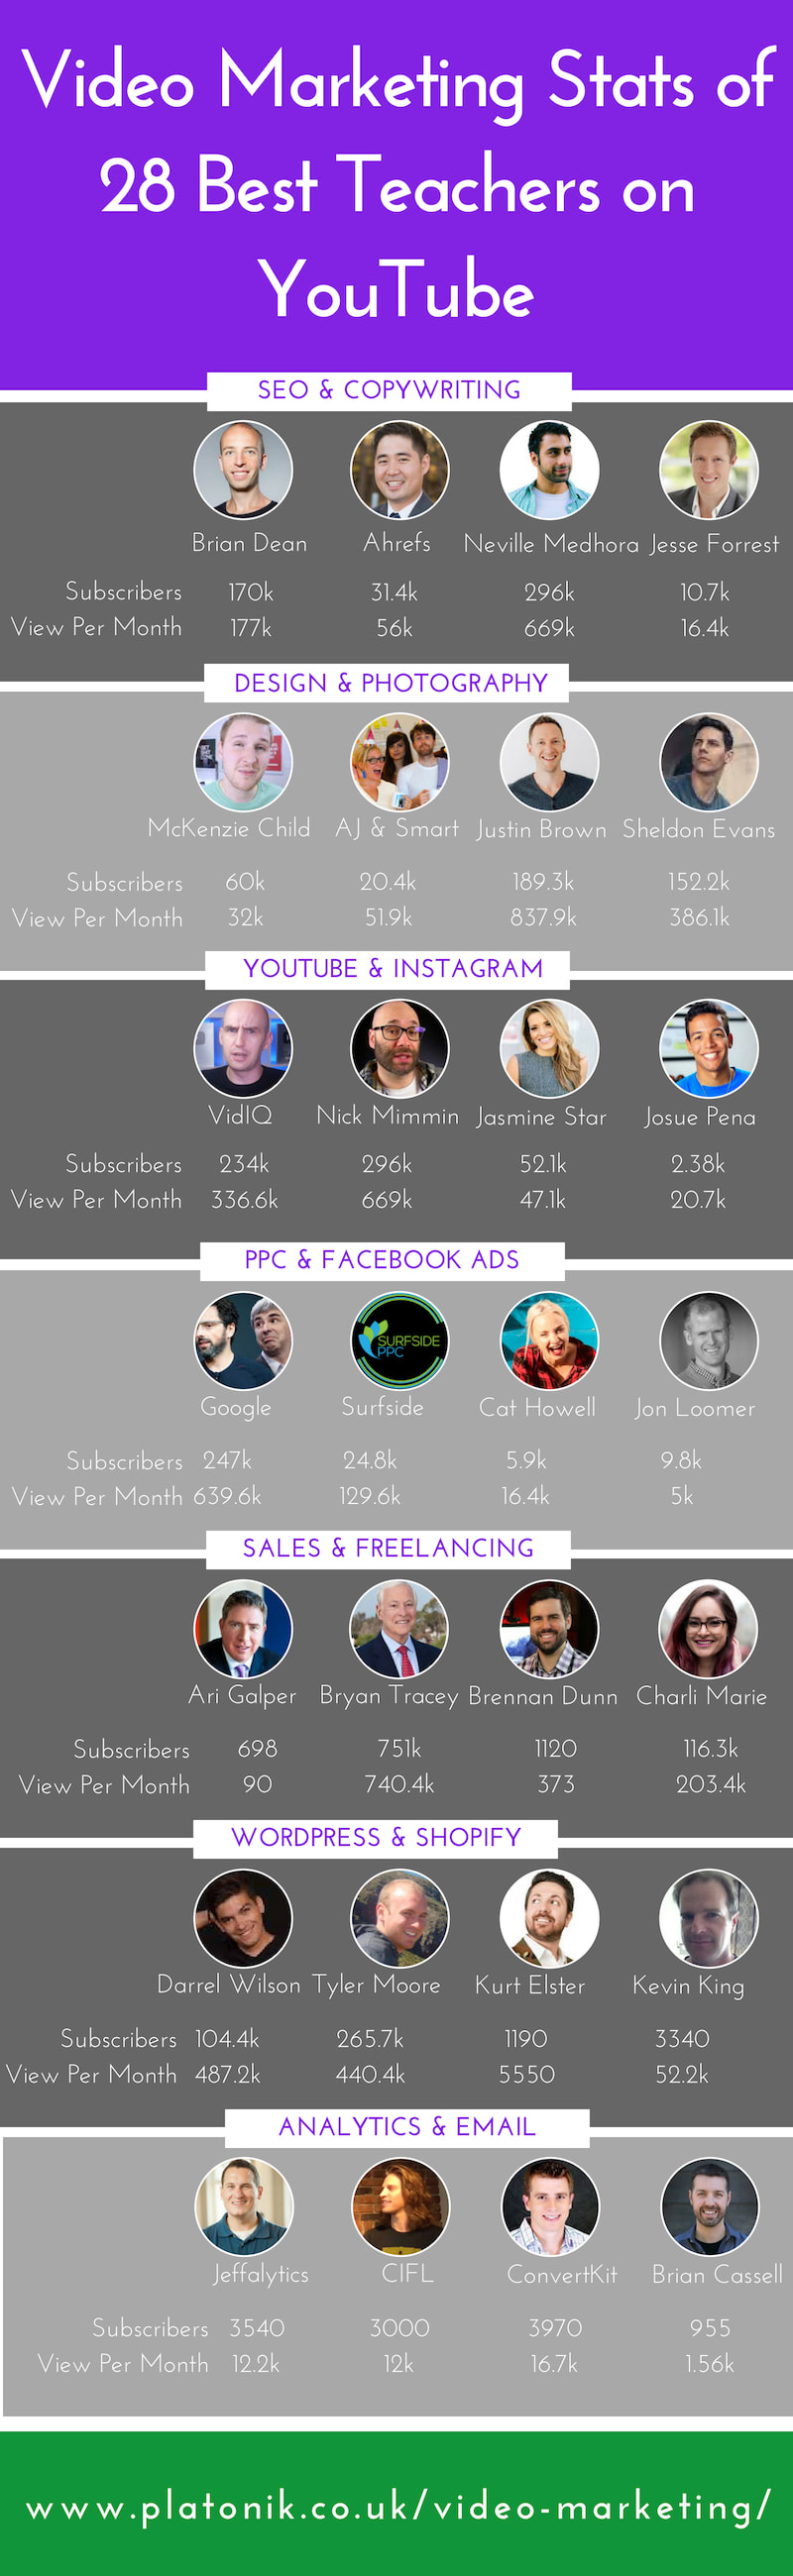 Video Marketing Statistics Infographic of YouTube channels